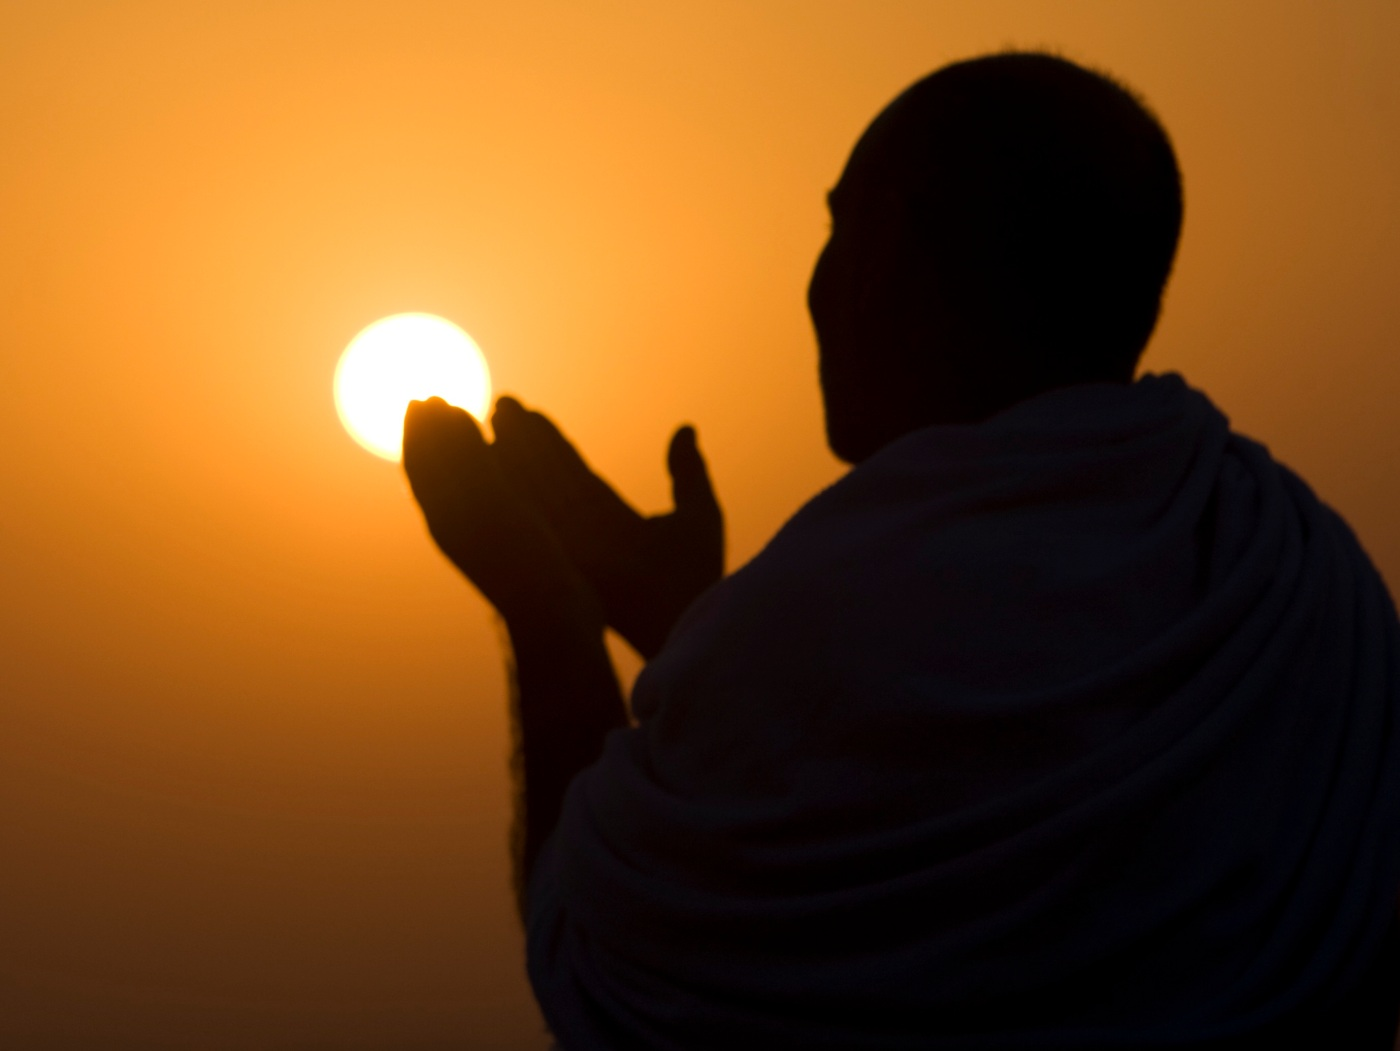 A Muslim pilgrim prays at the top of Mount Noor in Mecca, during the annual pilgrimage (Haj) December 4, 2008. The pilgrims will visit the Hera cave in Mount Noor, where Muslims believe Prophet Mohammad received the first words of the Koran through Gabriel. REUTERS/Ahmed Jadallah (SAUDI ARABIA)